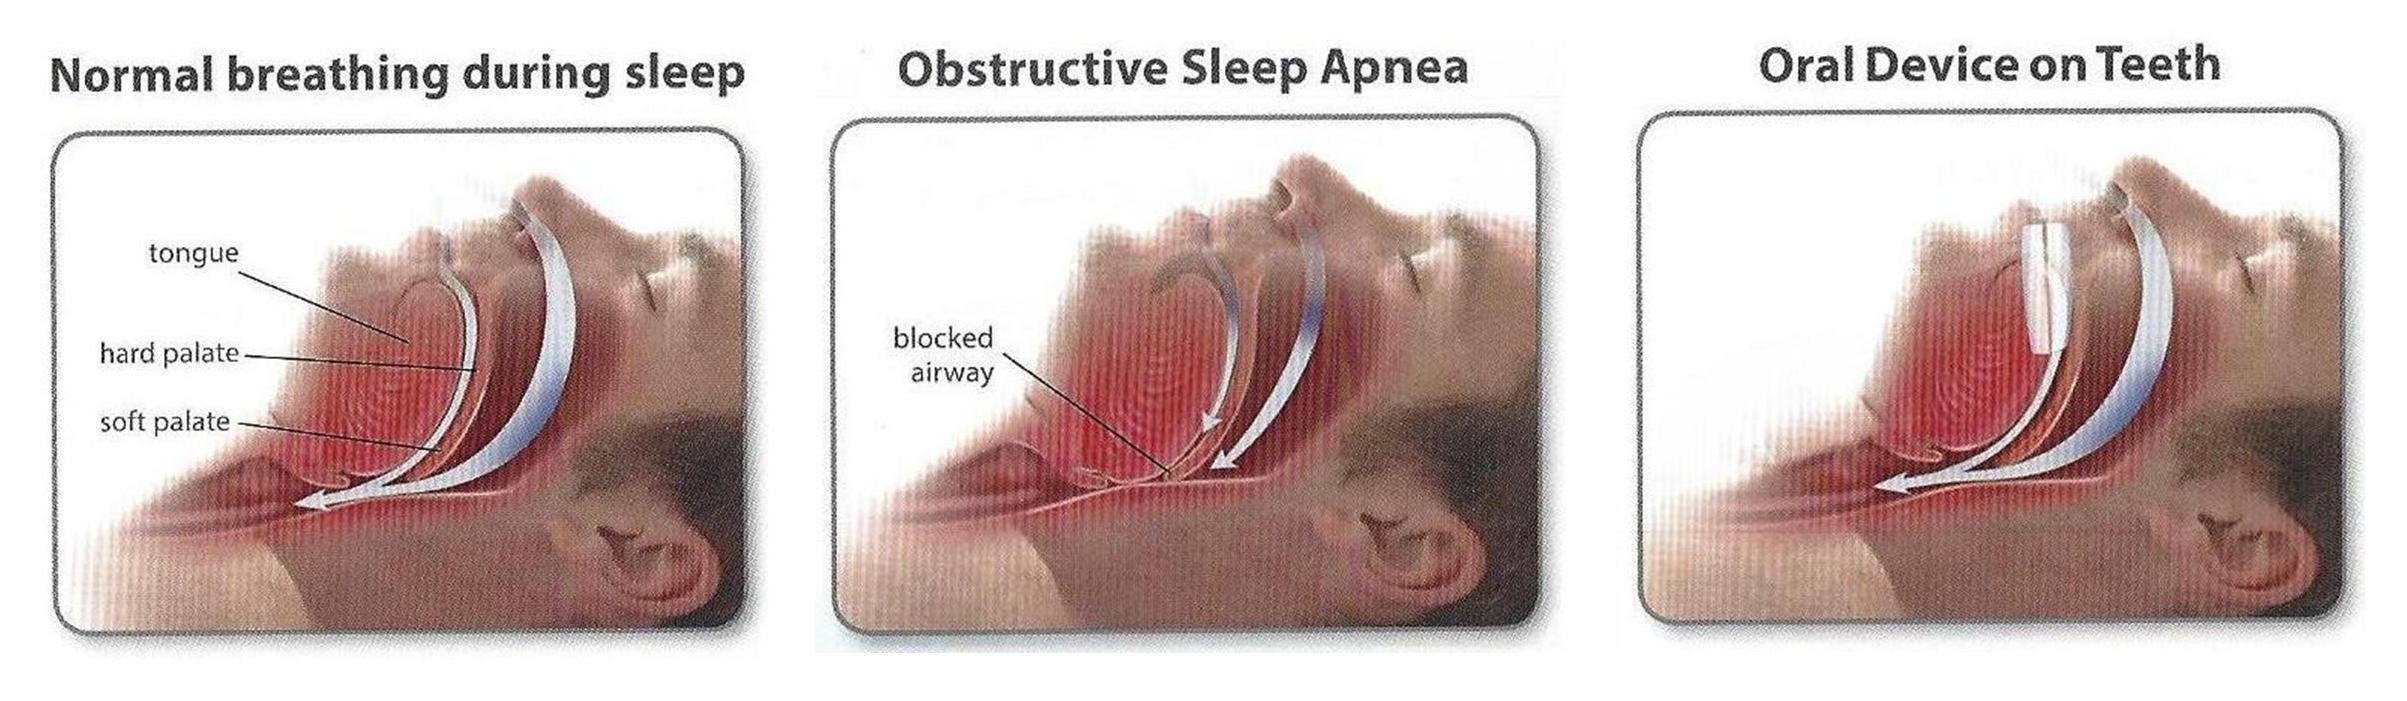 Sleep apnea process illustrator